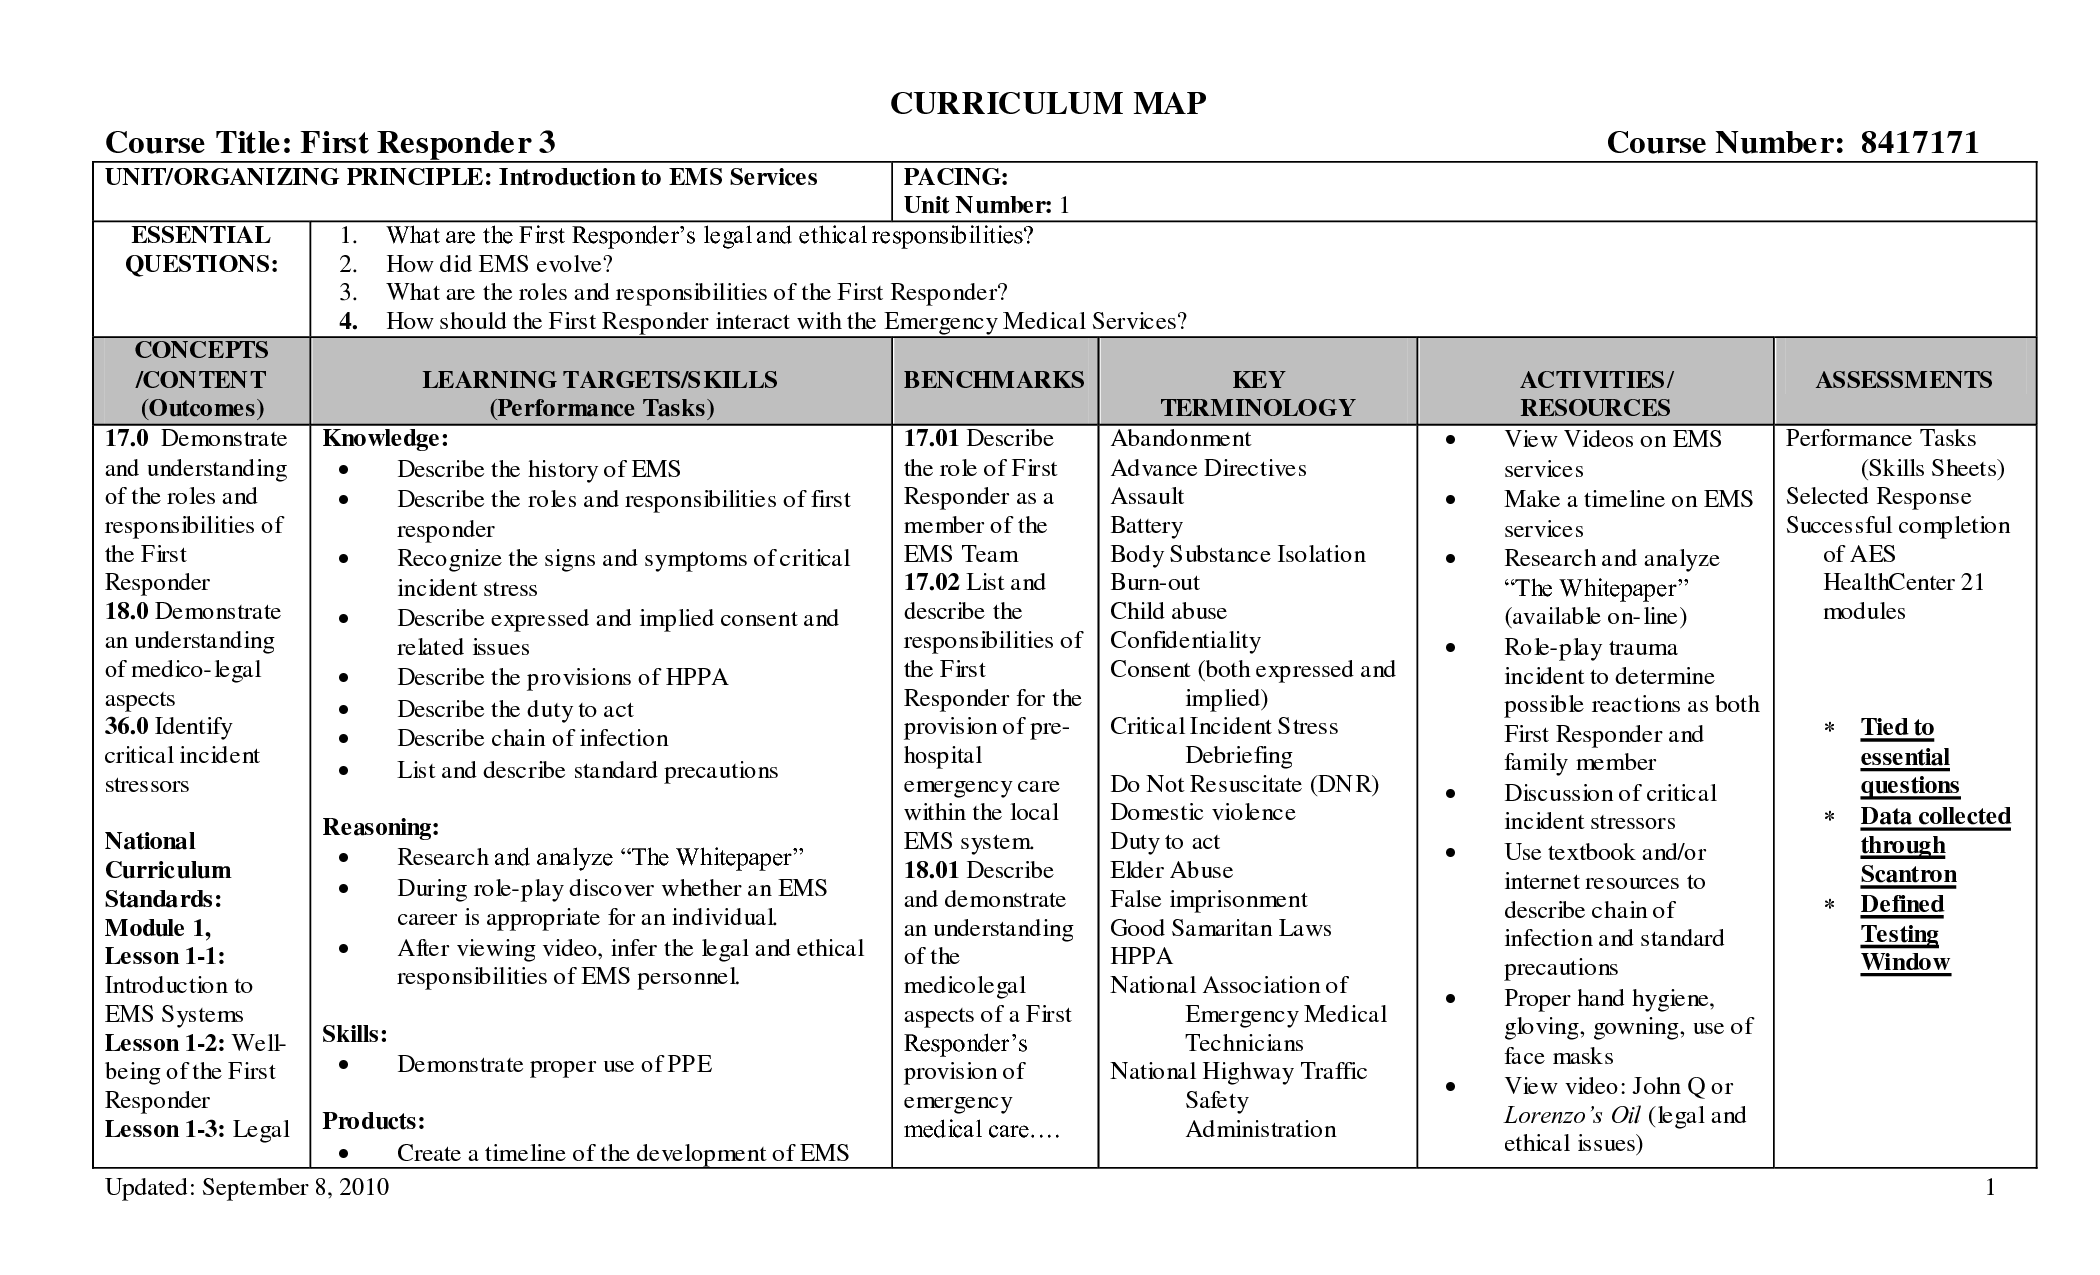 Curriculum Mapping Template images